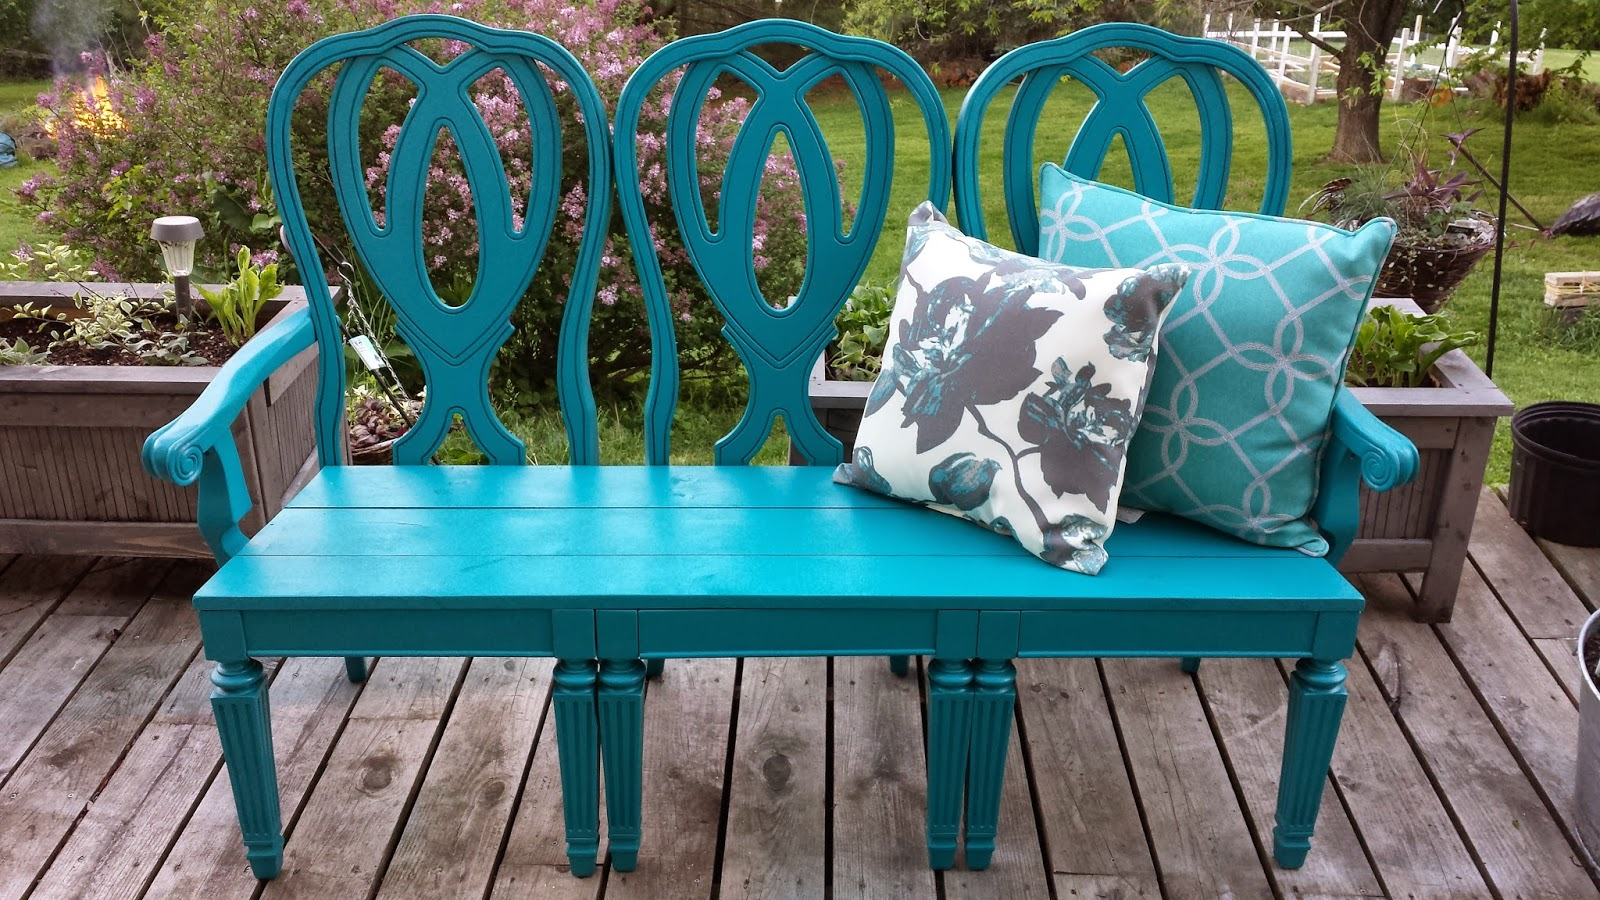 First Is The Project That Kicked Off This Blog! I Made A Garden Bench Out  Of Some Old Dining Chairs: